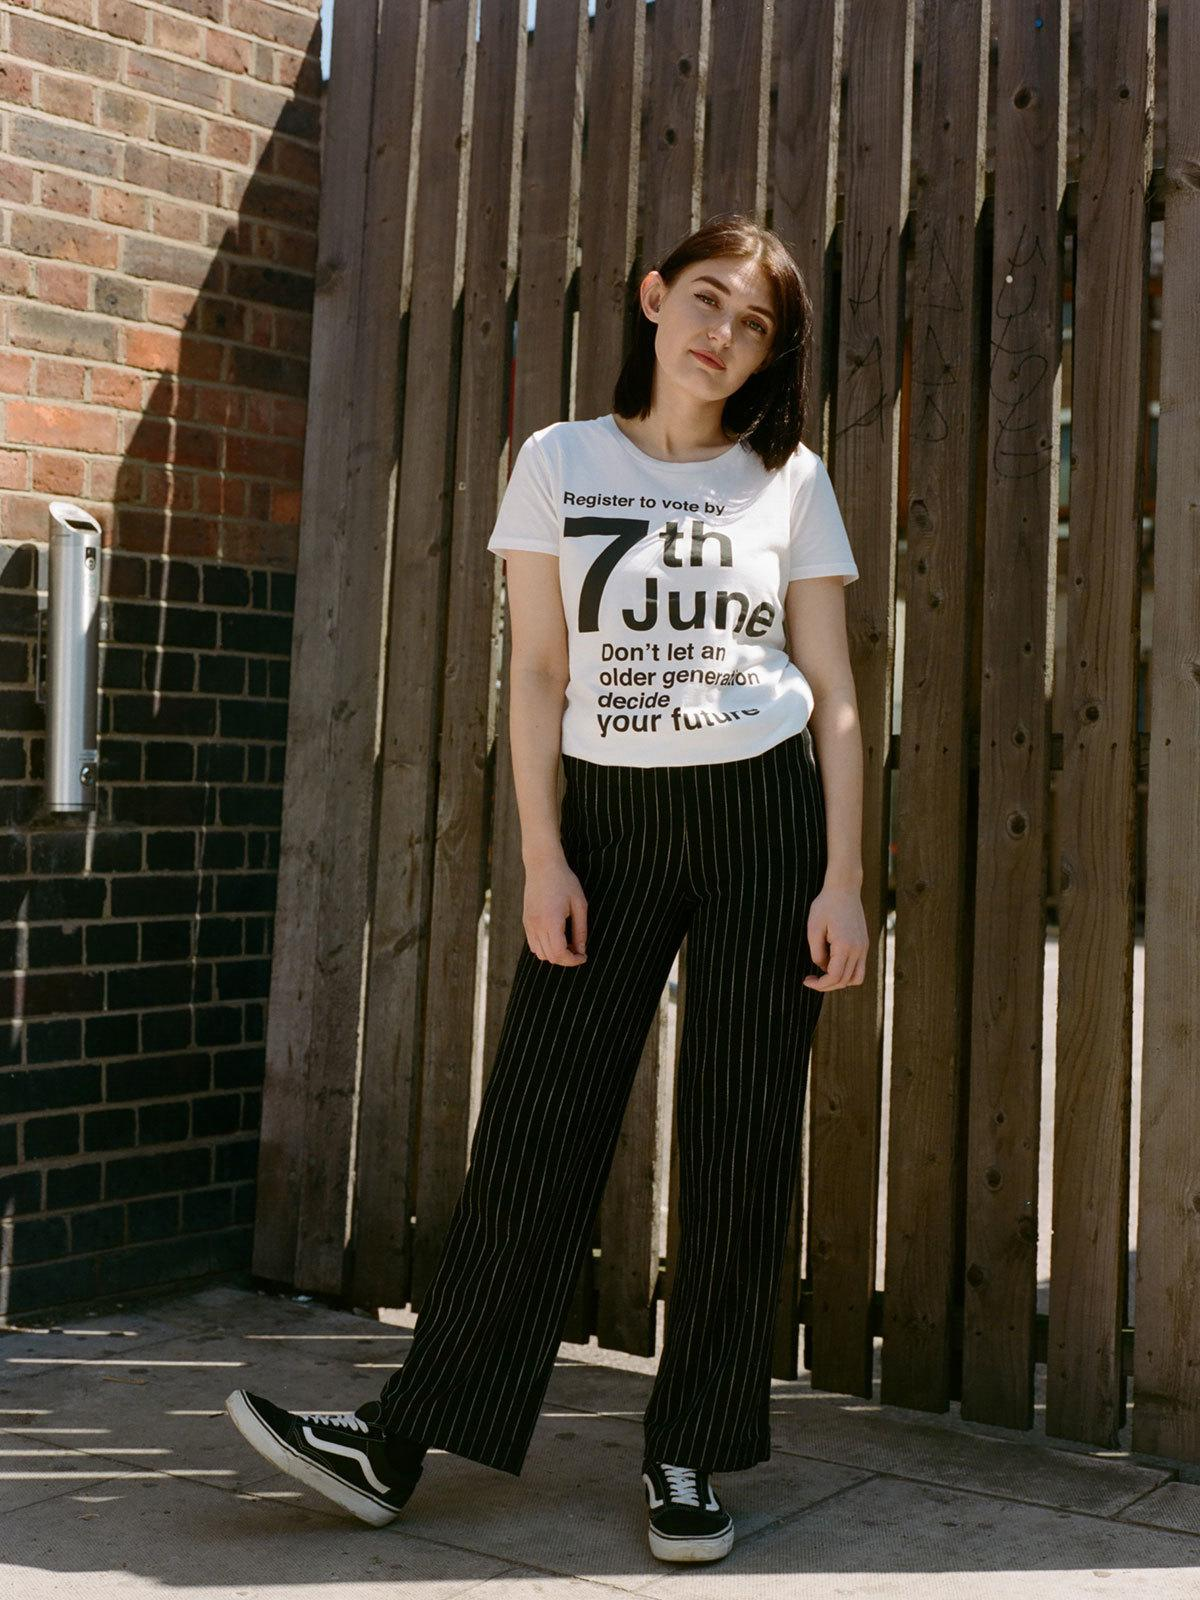 COMMUNITY: TORI WEST     Tori West  is making her way in the fashion industry in a pastel pink haze. Founder of  BRICKS Magazine  turned zine publisher, Tori creates a super stylish platform for fashion, art and music. Balancing the demands of 'real life' and continuing to create and collaborate, we chat to Tori about flying the flag for young creatives.  Read more >